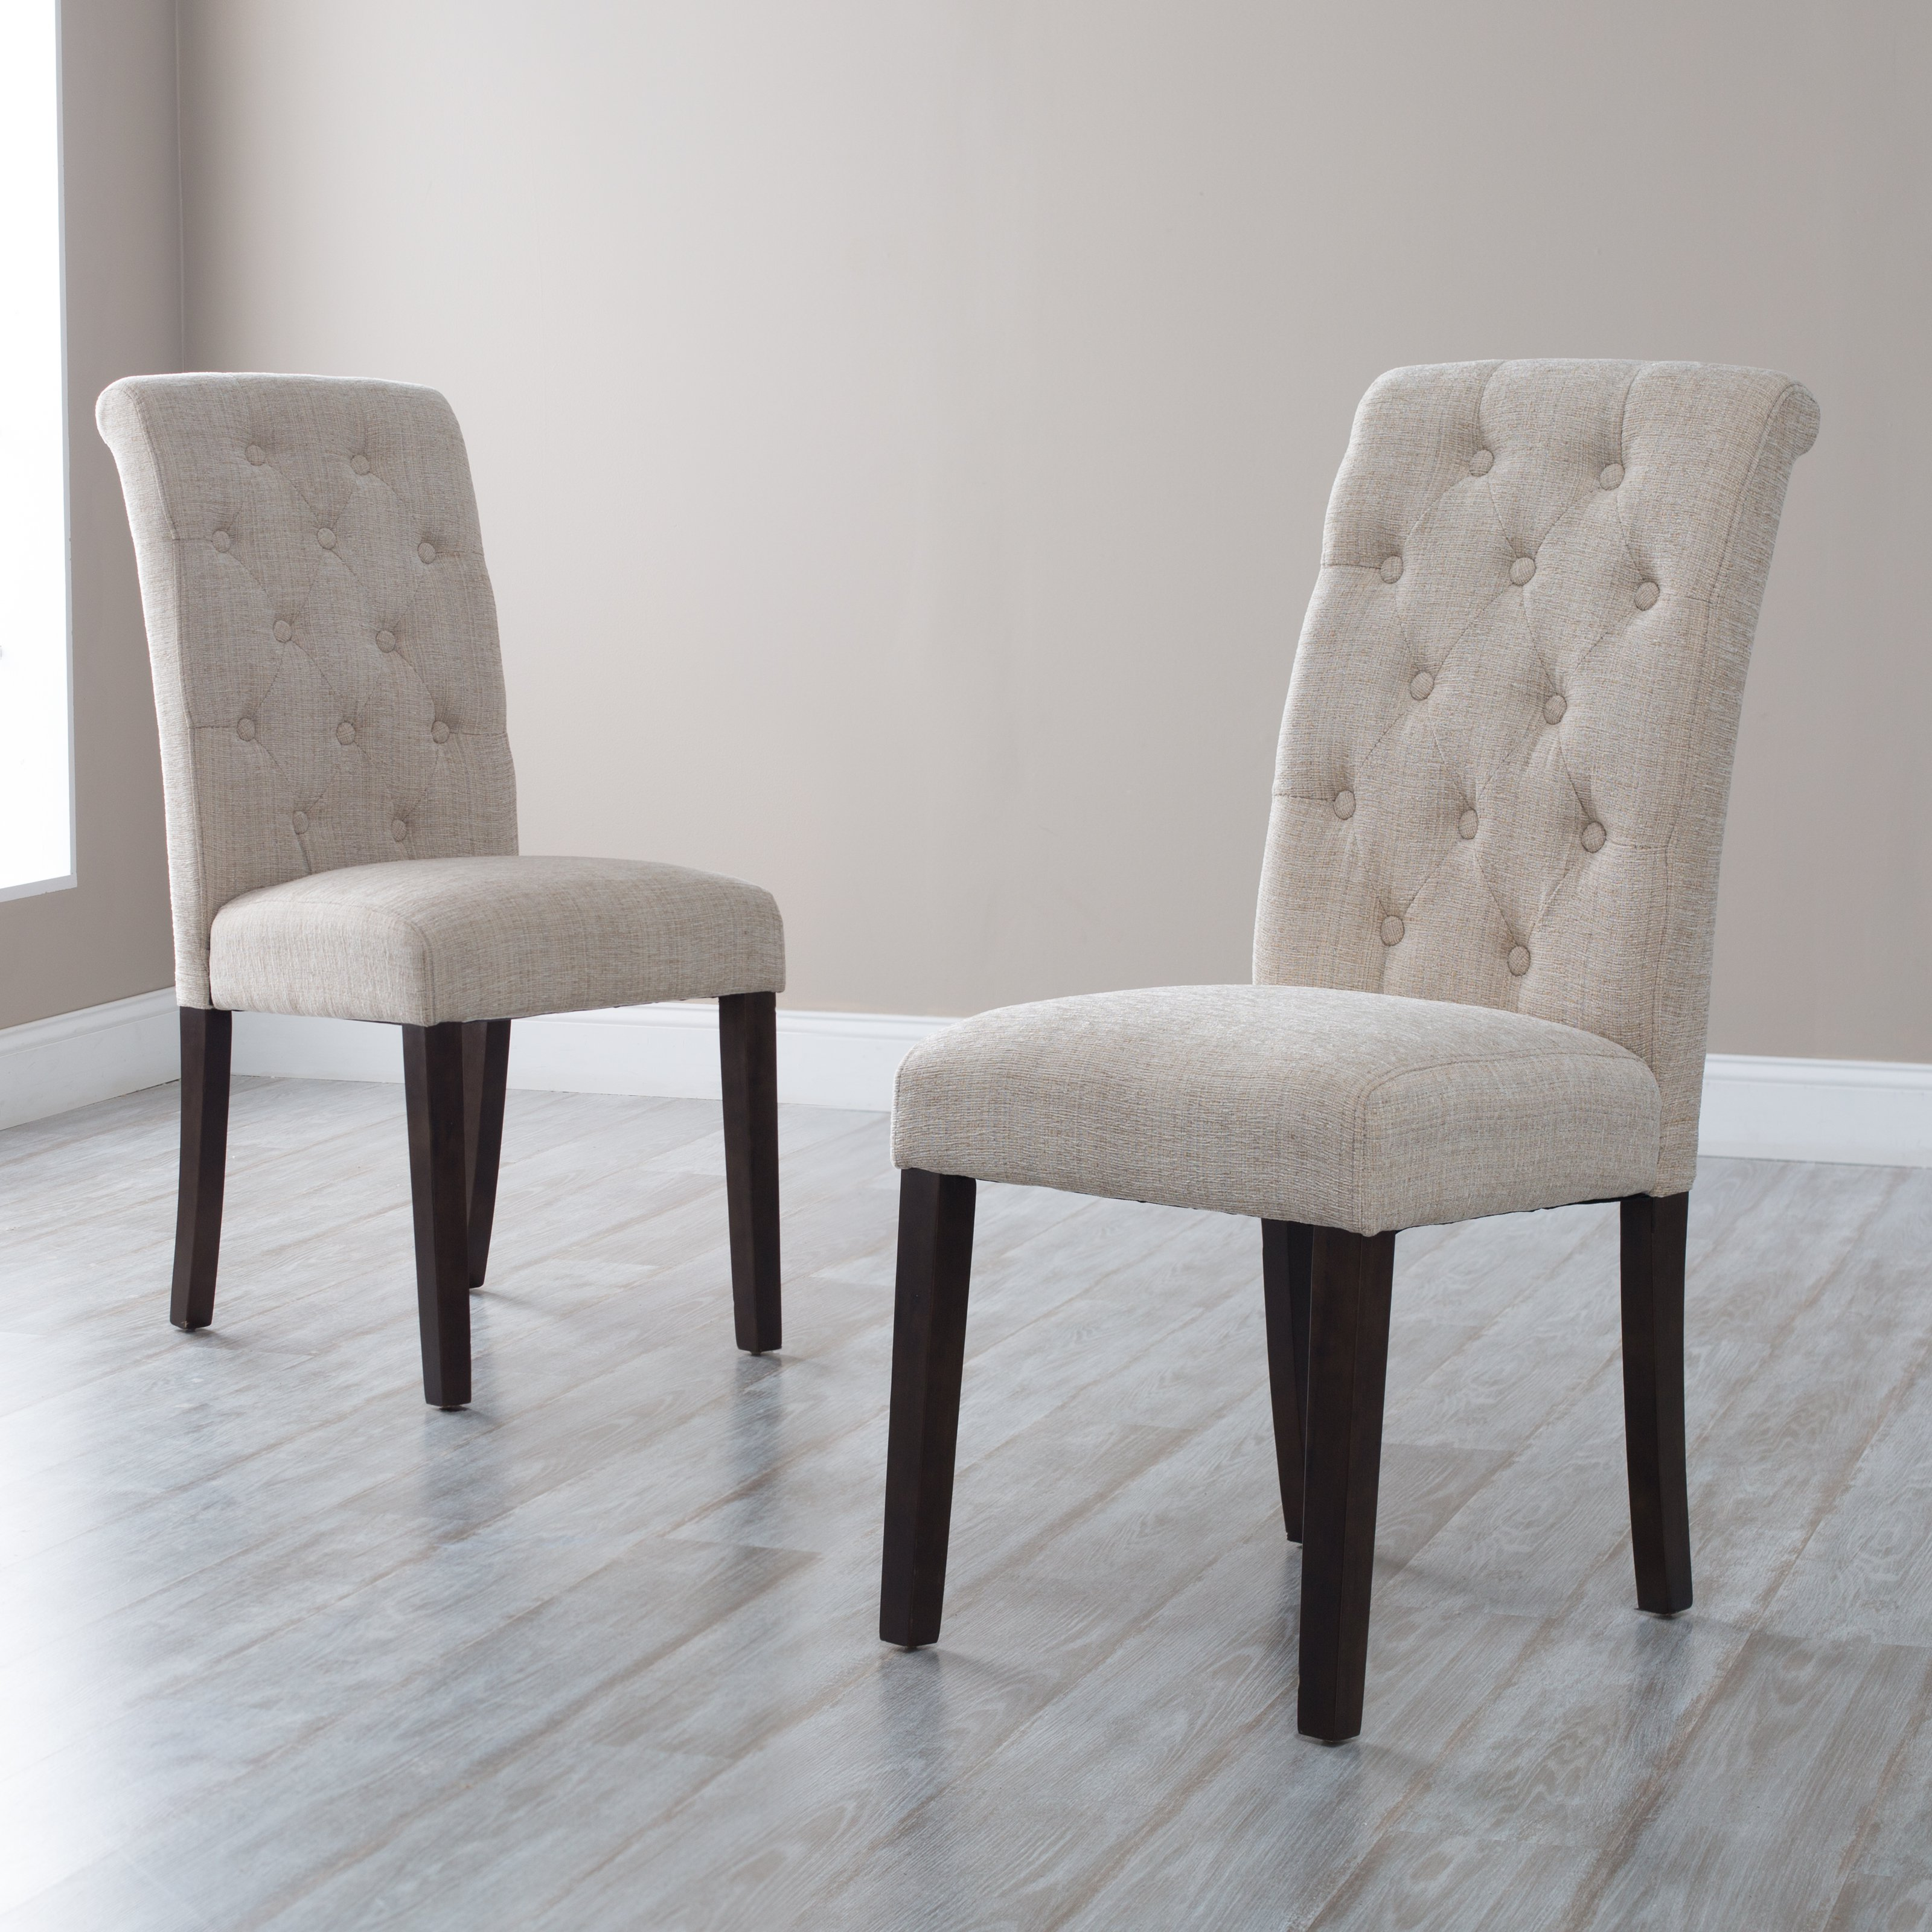 palazzo dining chairs - set of 2 | hayneedle VIJXDCB